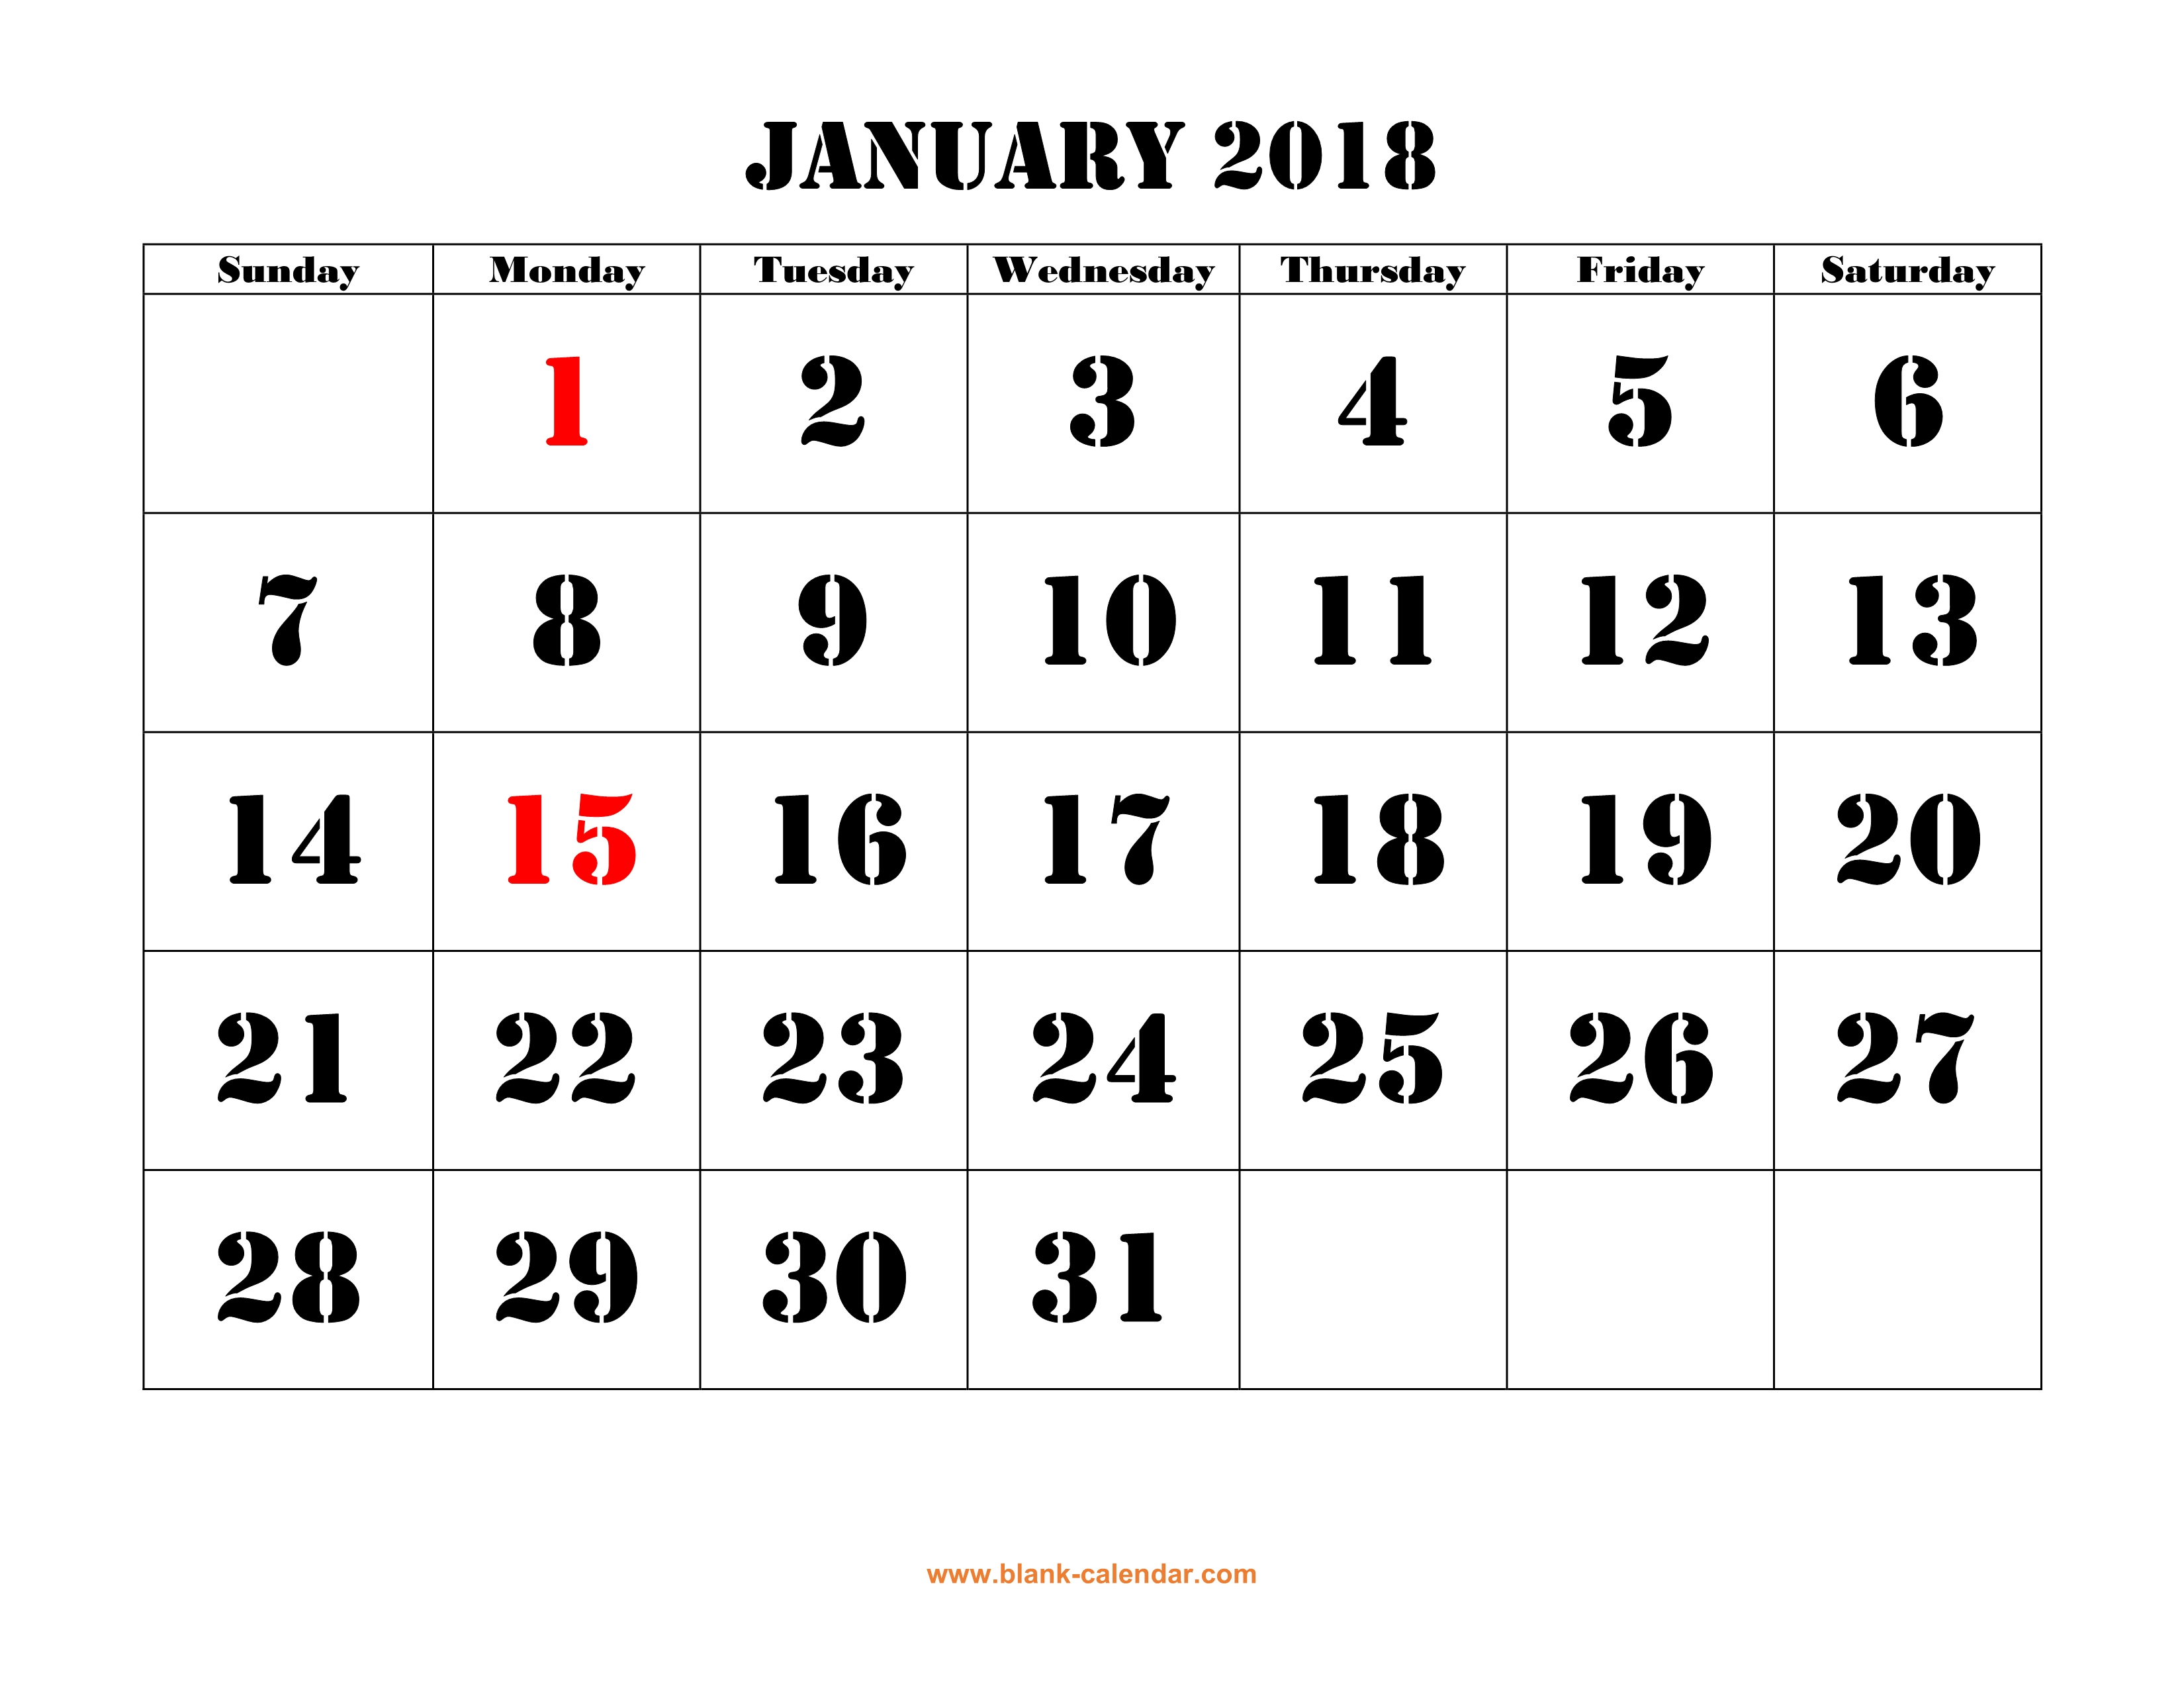 printable calendar 2018 large font design holidays on red one month per page